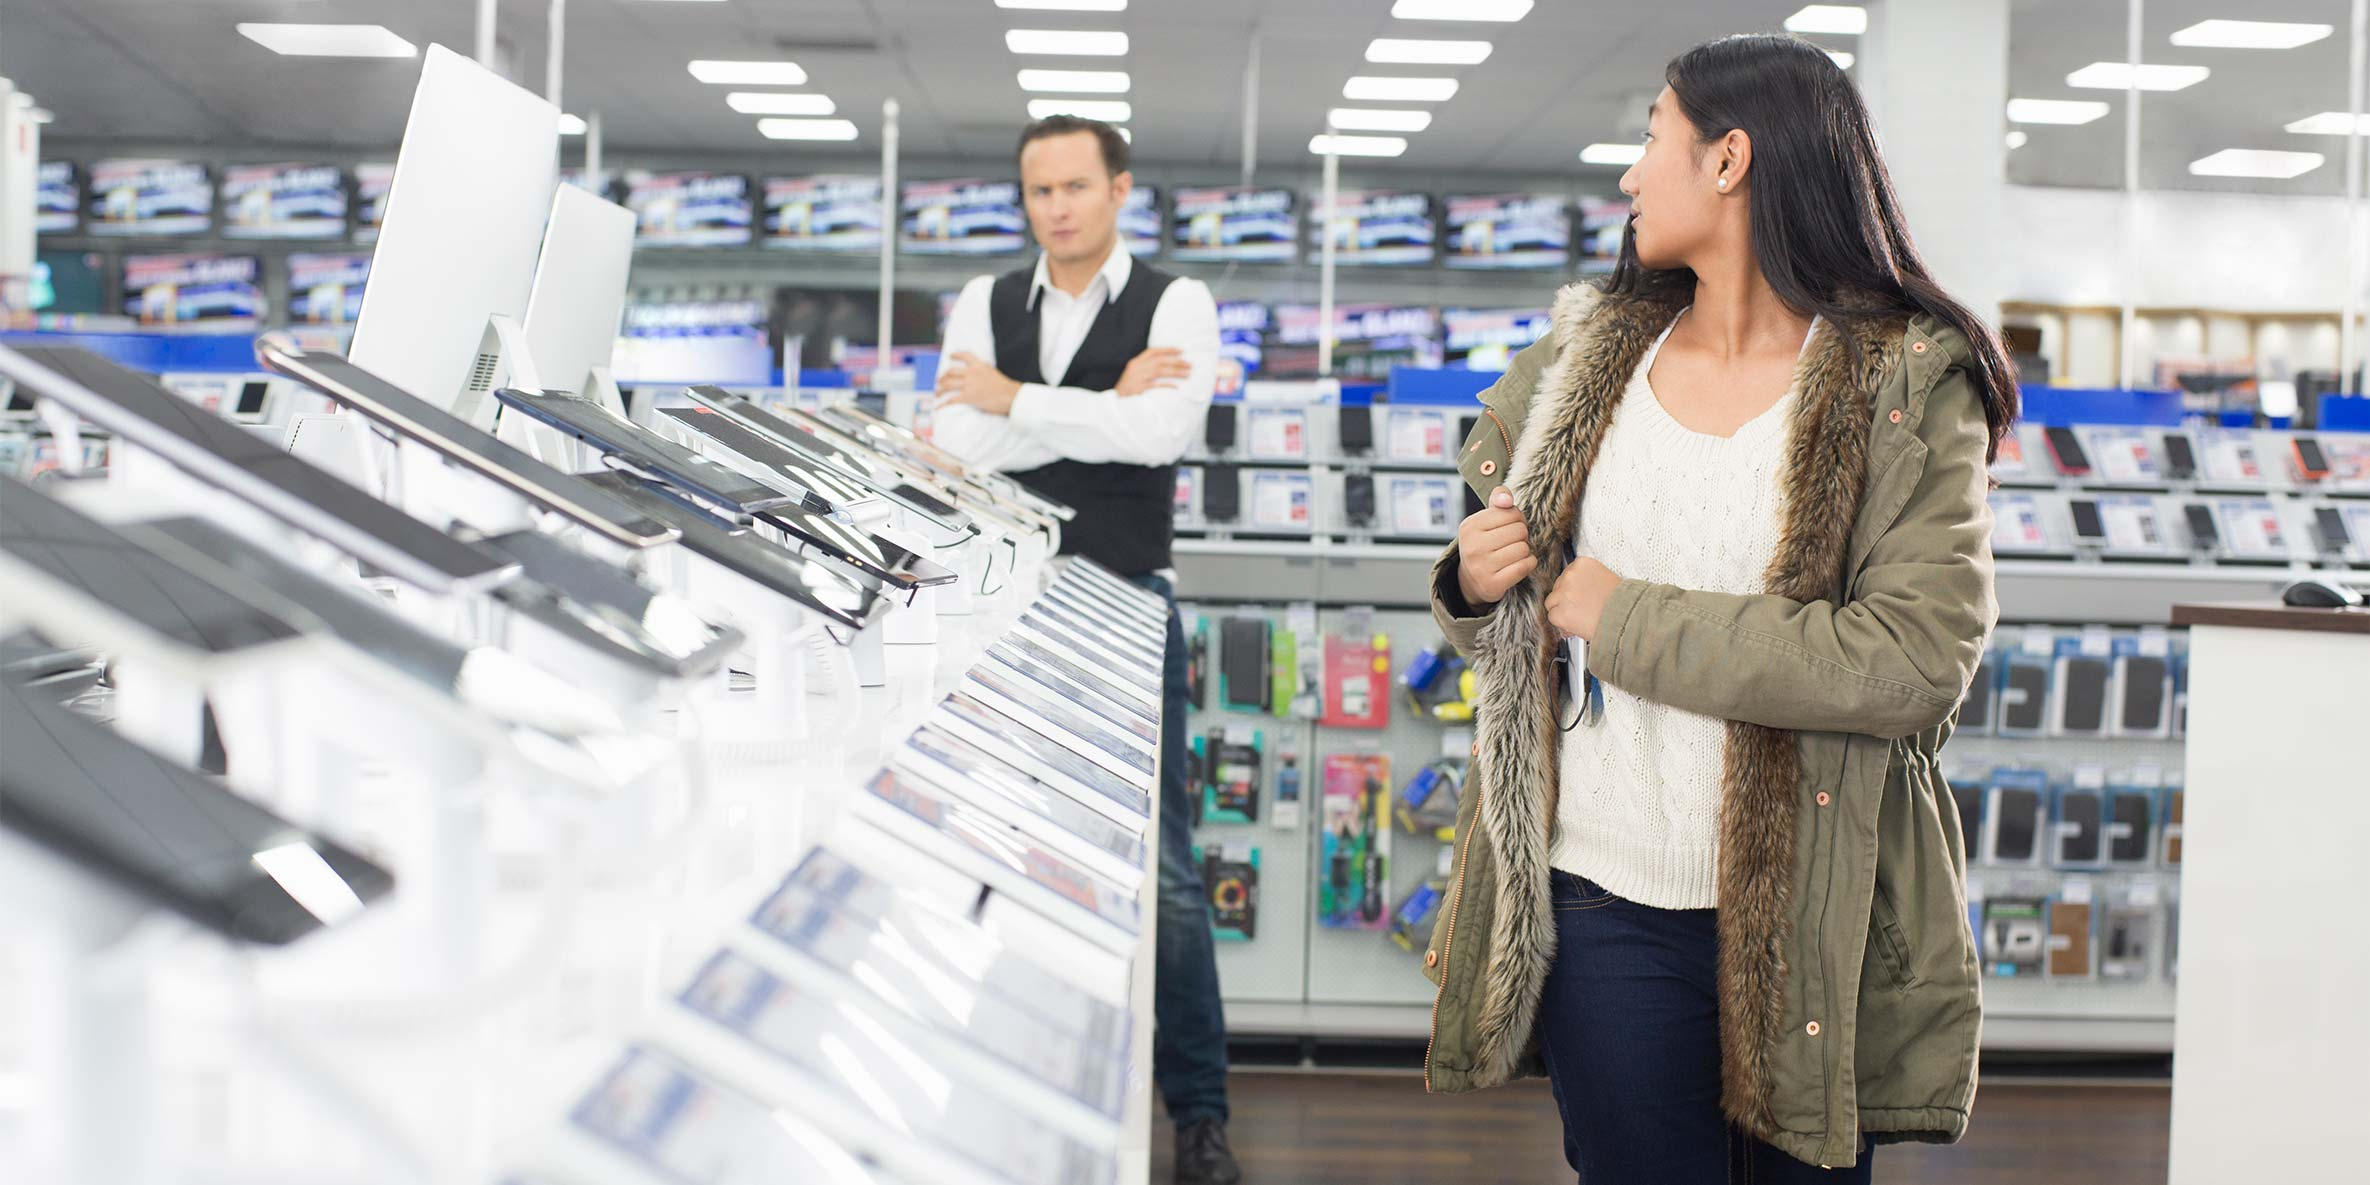 4 Ways to Deter Shoplifters